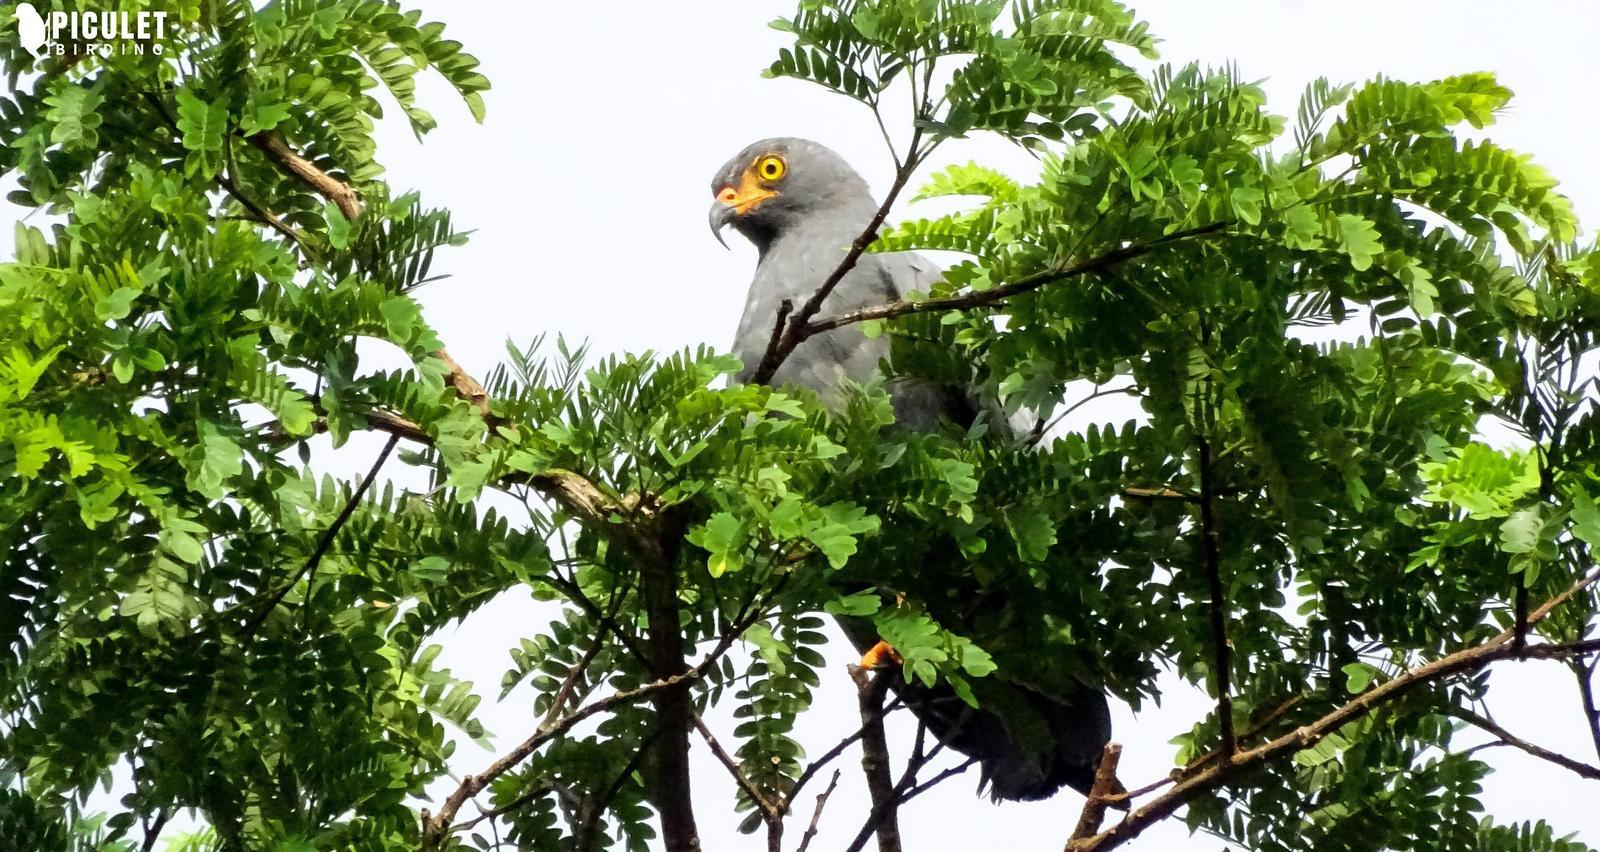 Slender-billed Kite Photo by Julio Delgado